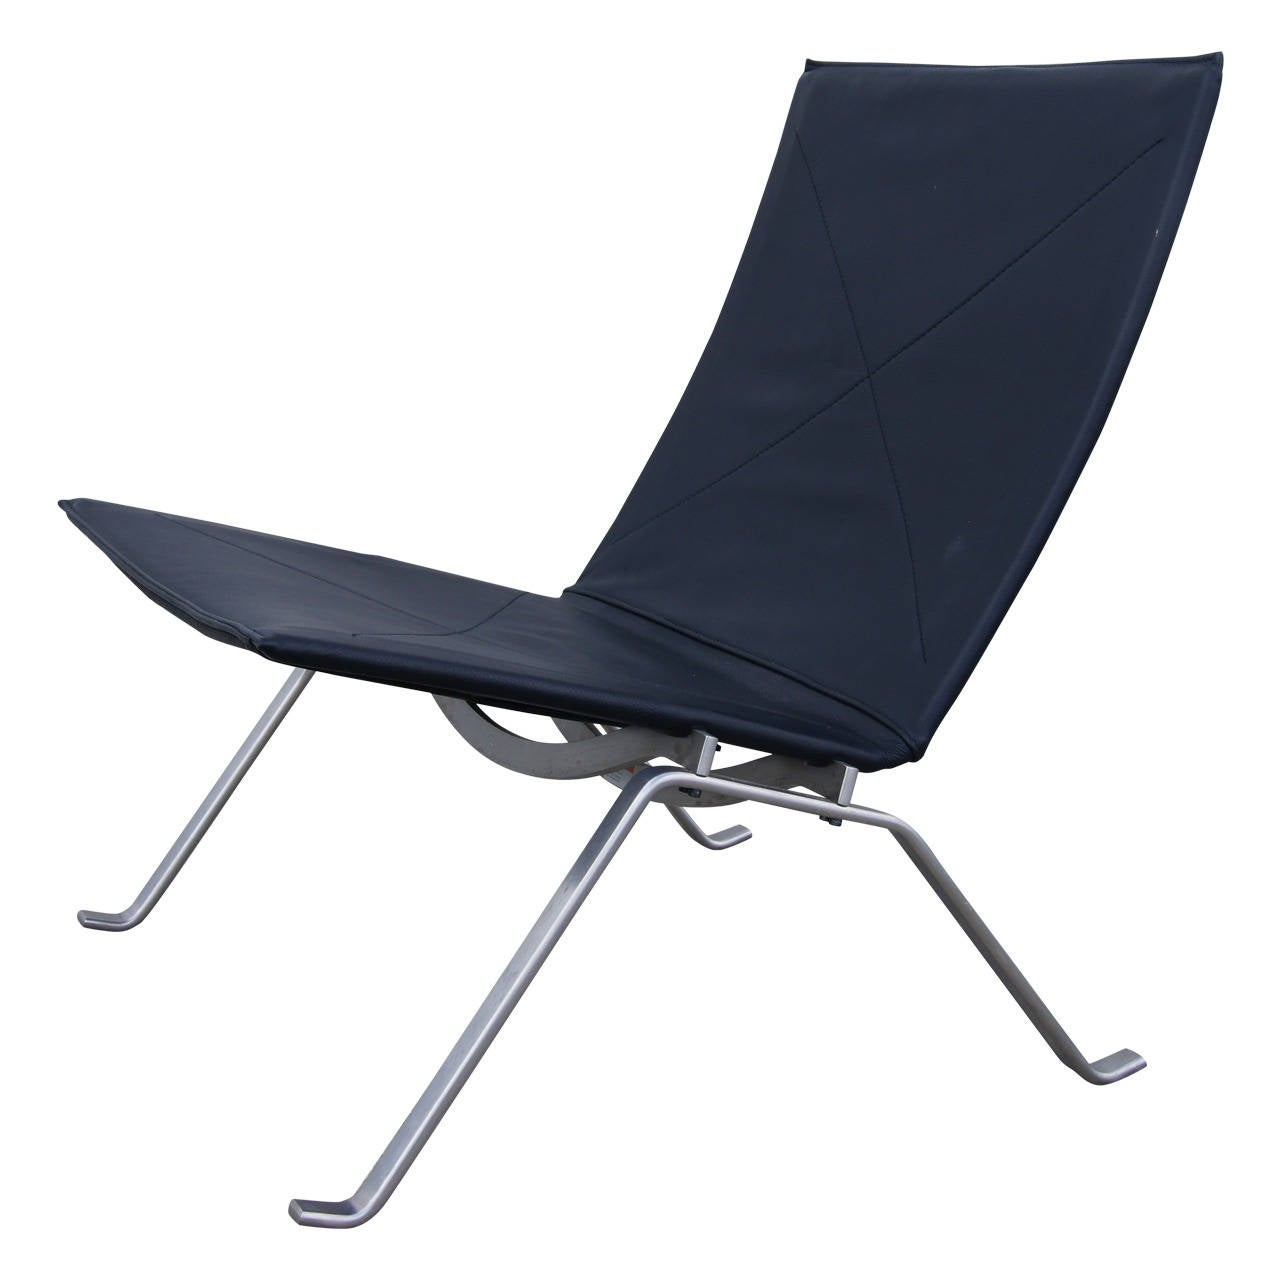 Pk22 Chair Pk22 Lounge Chair By Poul Kjaerholm For Fritz Hansen At